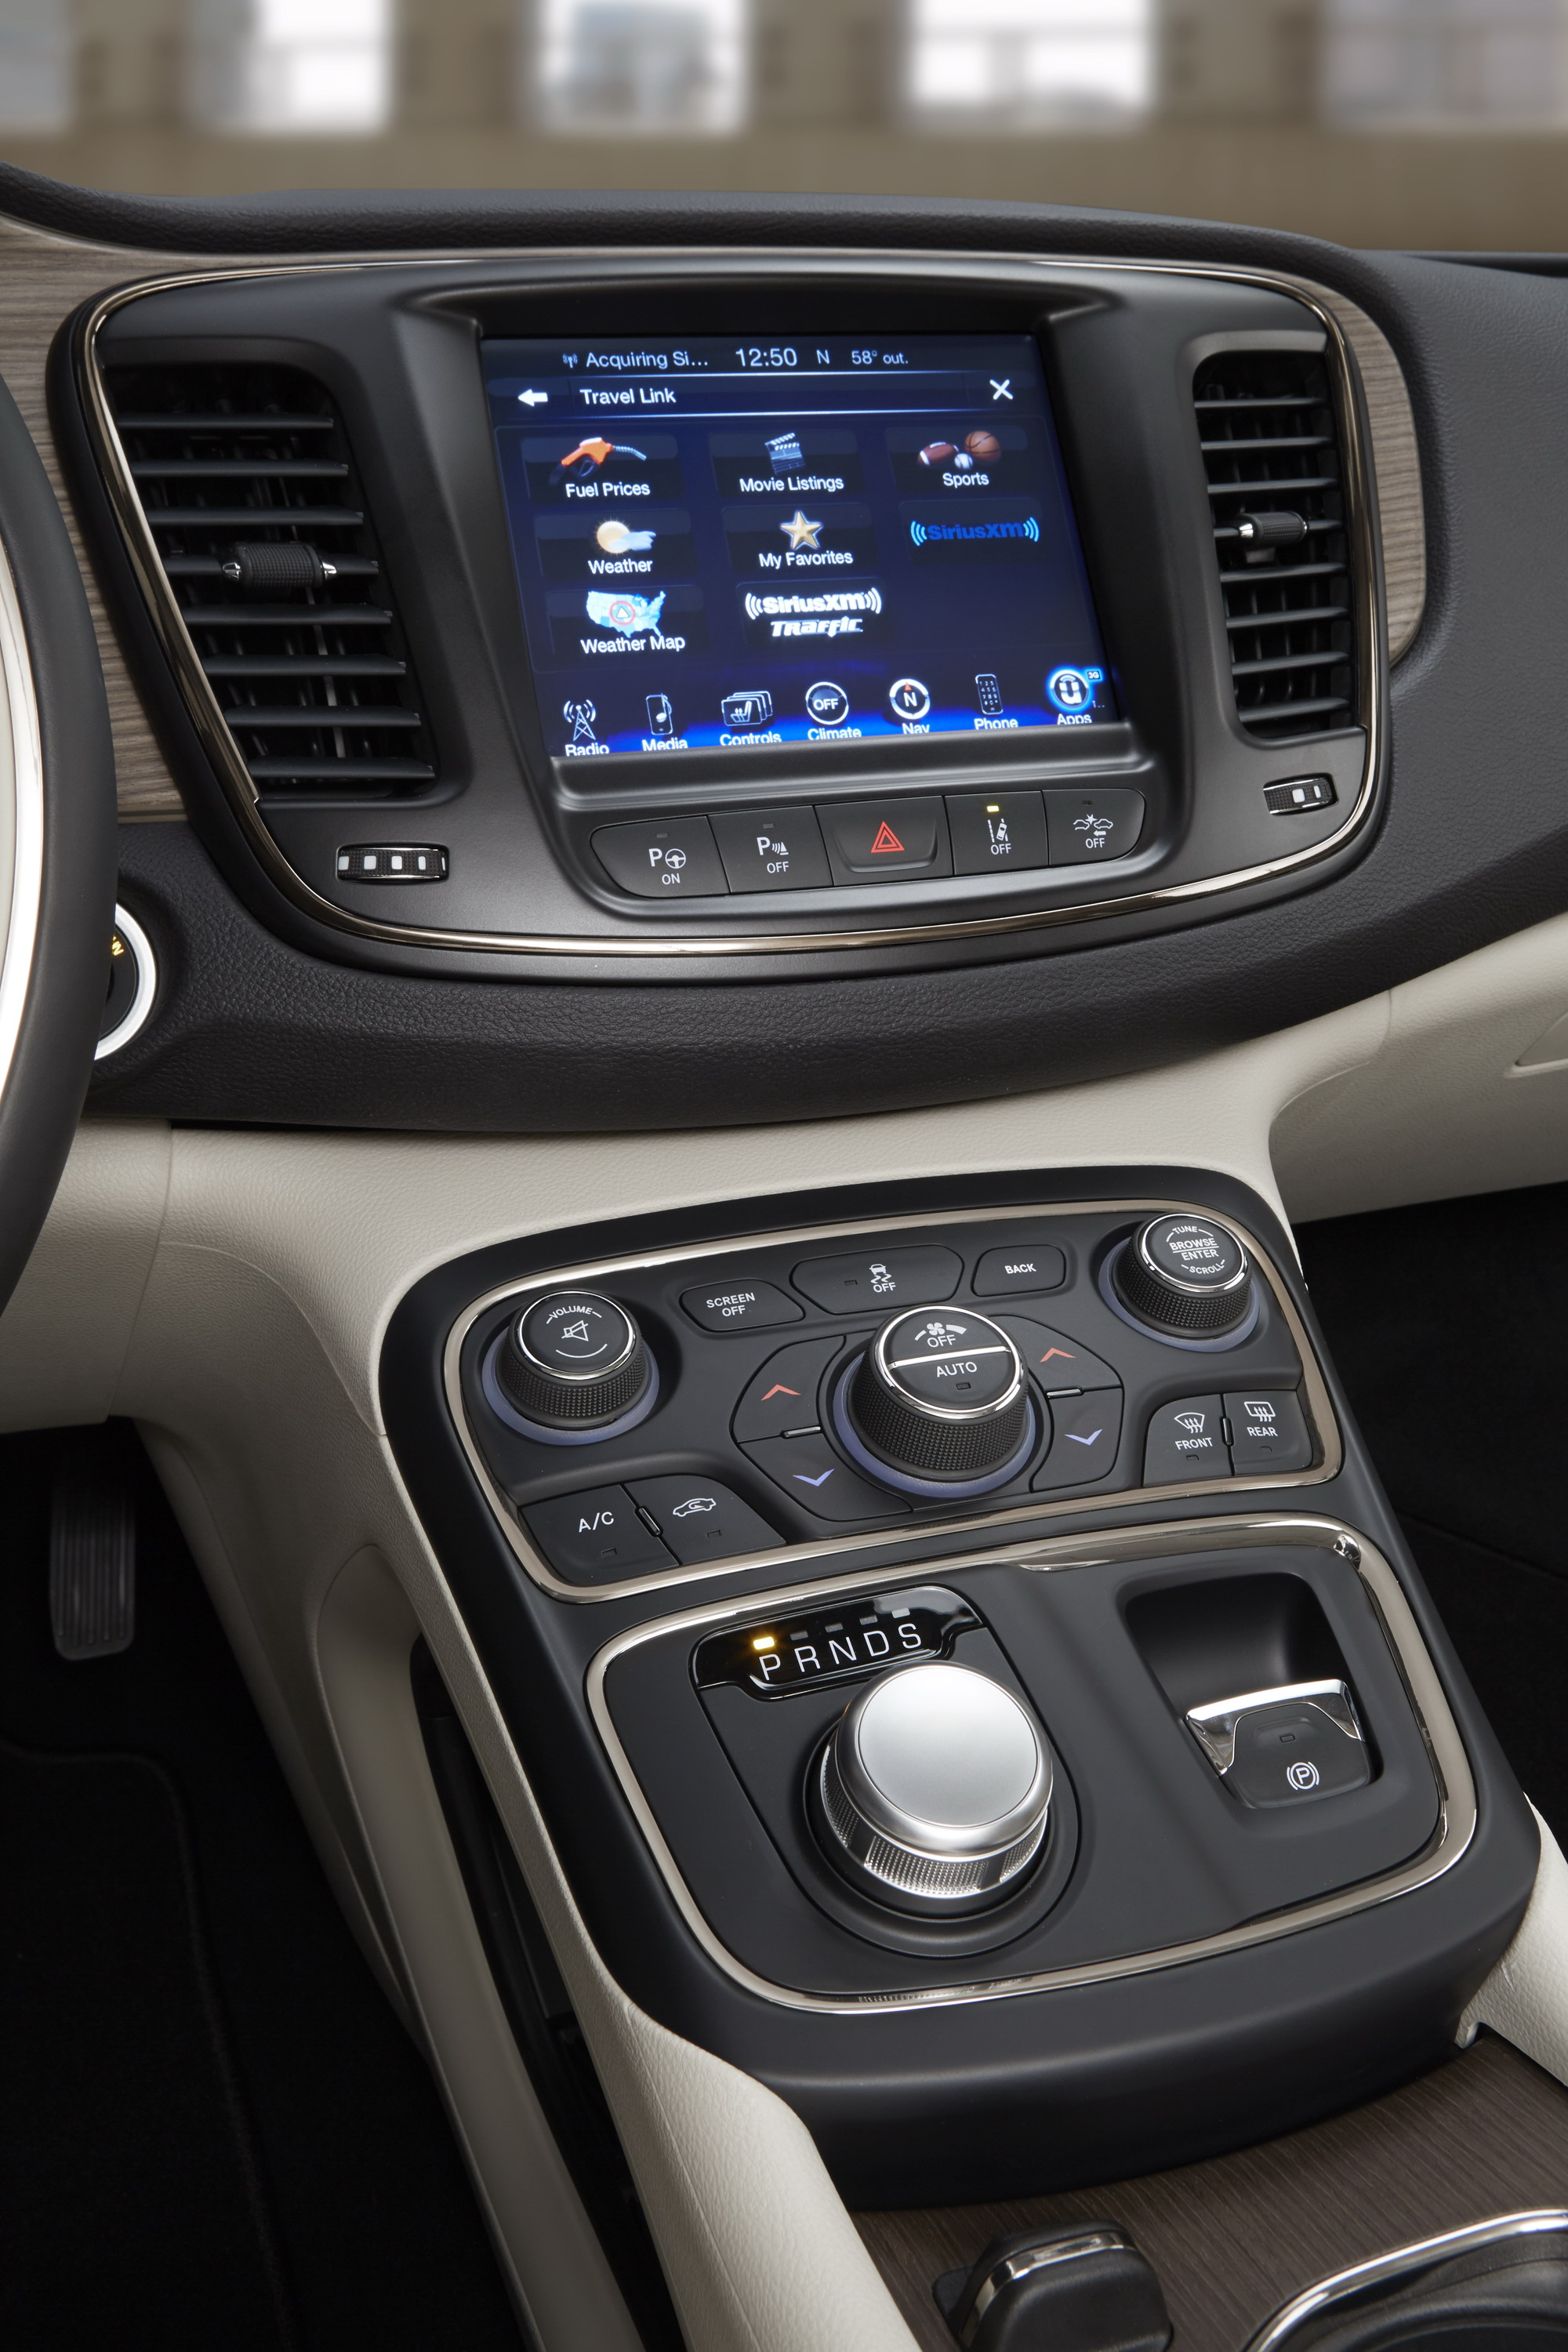 2015 chrysler 200 review gallery 538096 top speed. Black Bedroom Furniture Sets. Home Design Ideas